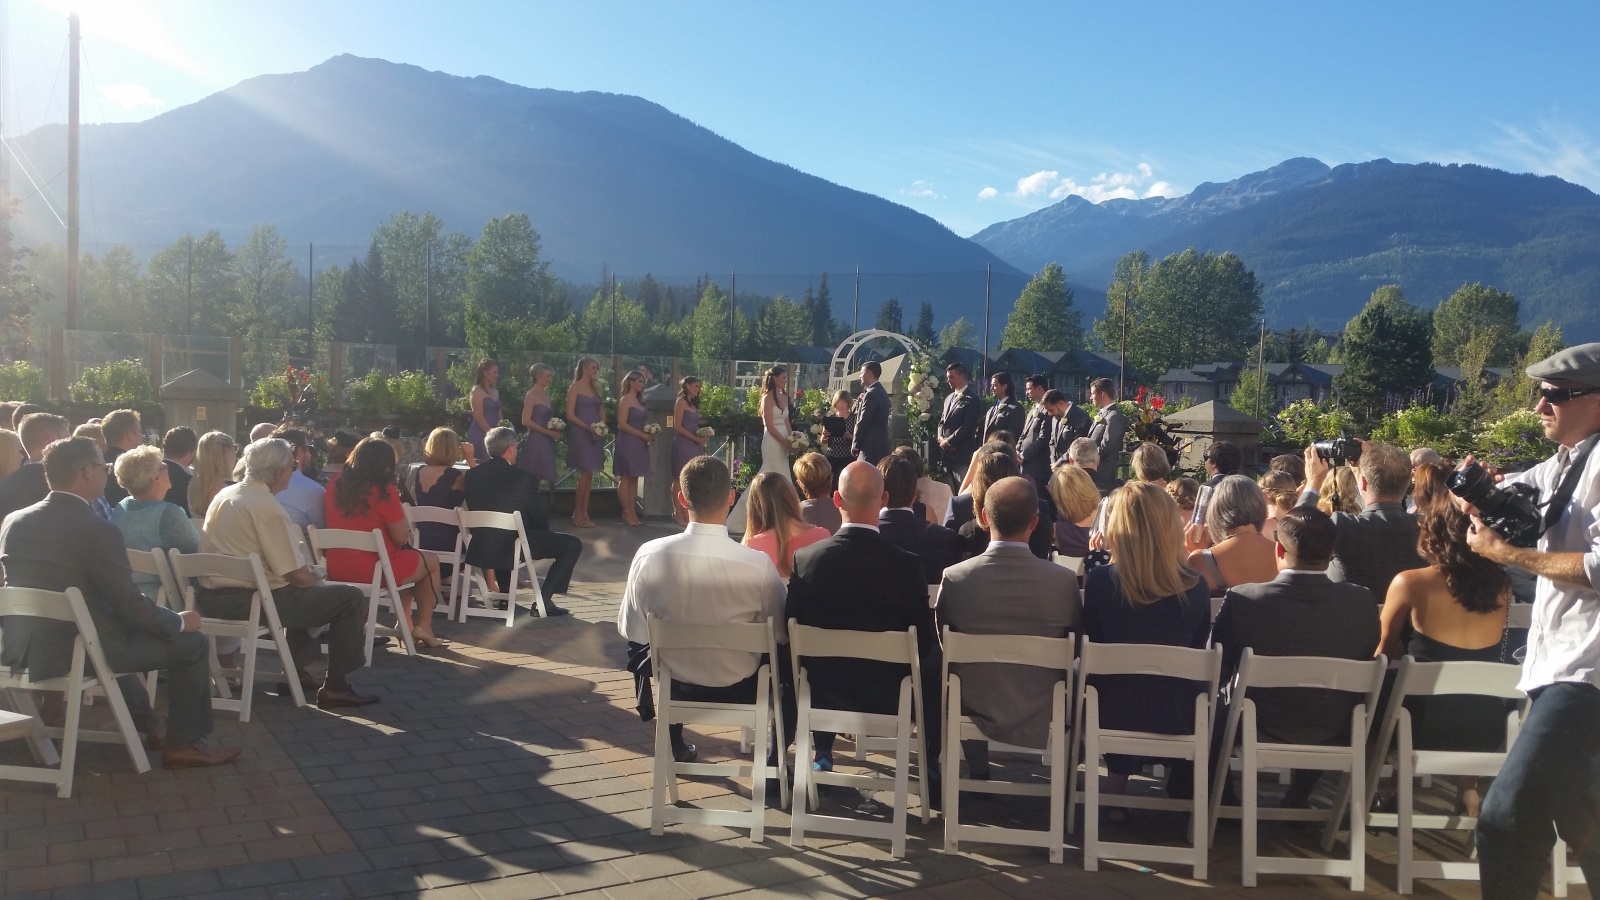 Whistler Wedding Venues - Whistler Wedding